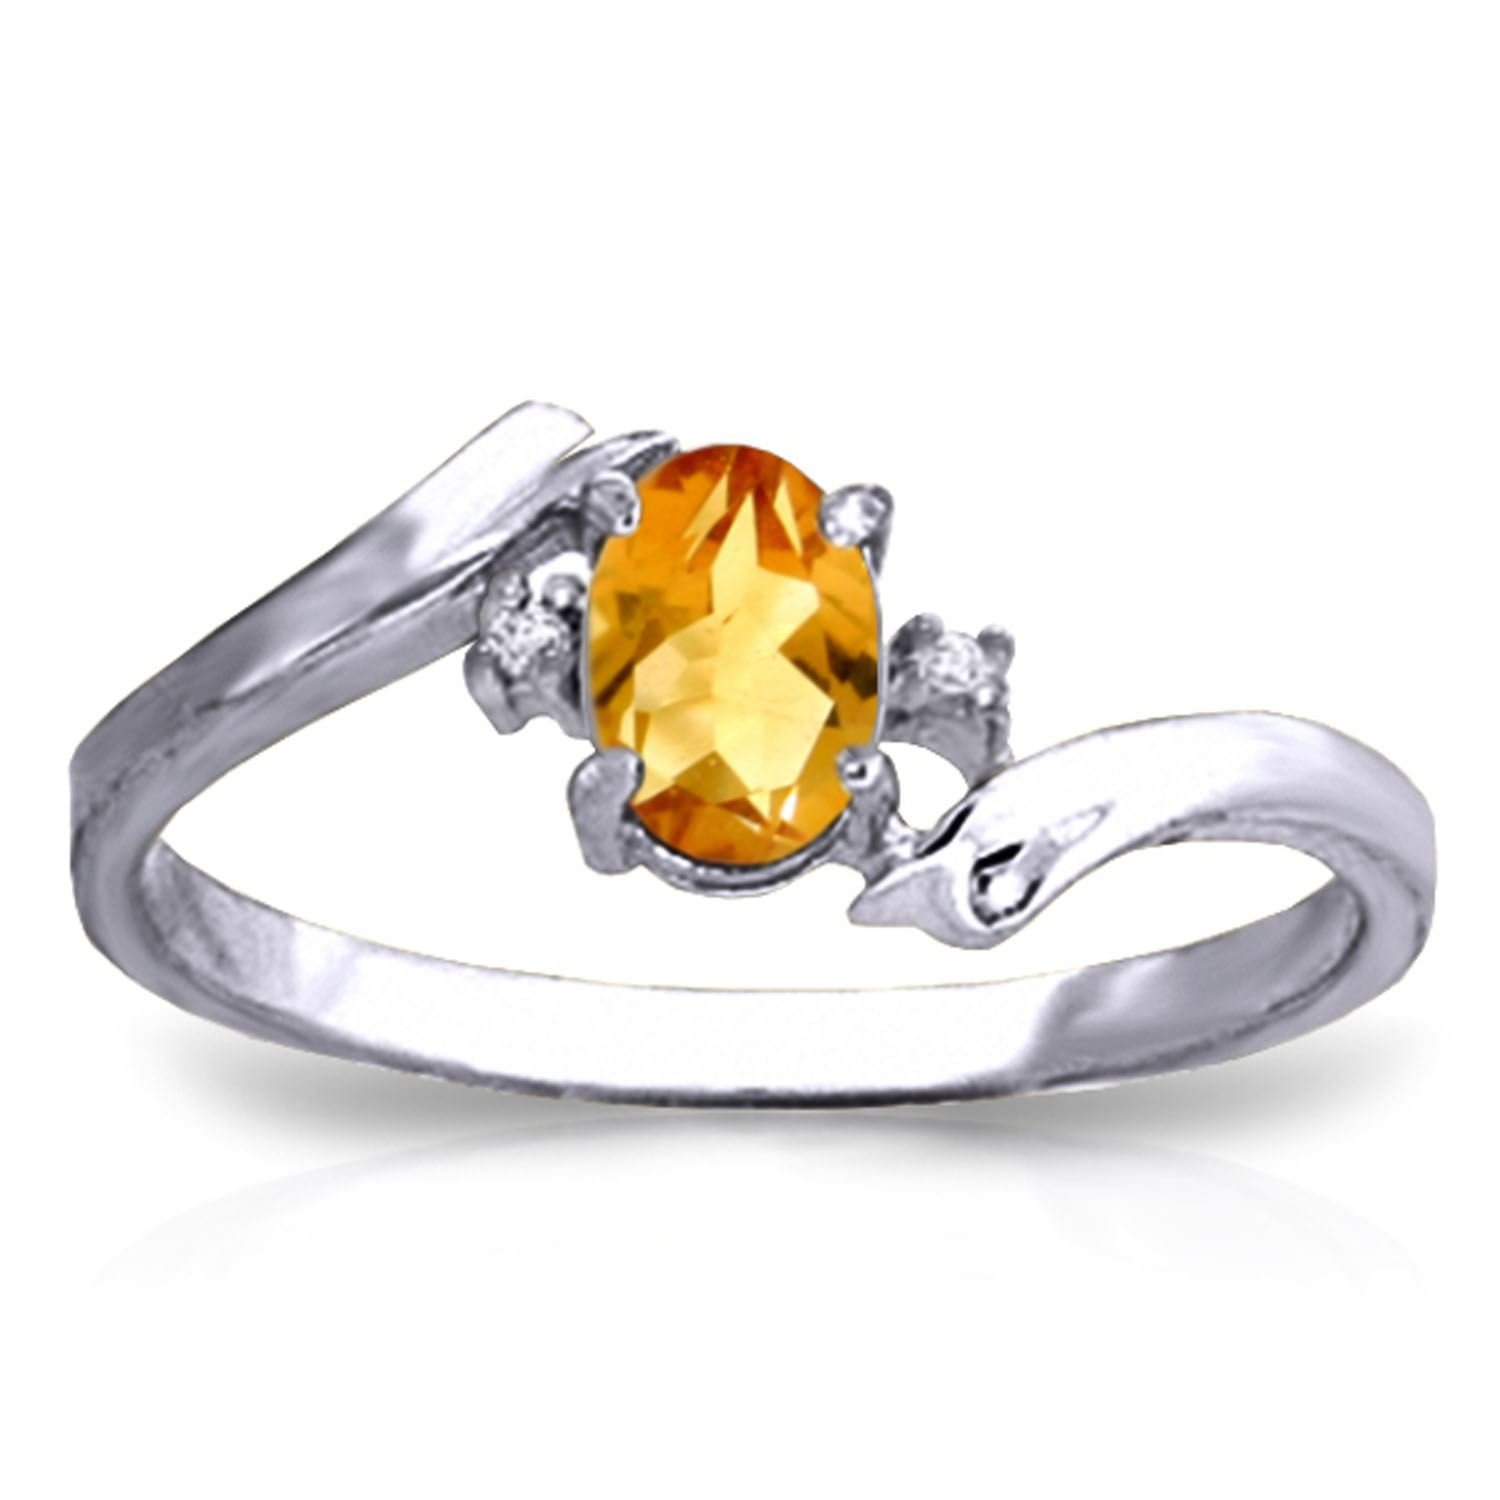 ALARRI 0.46 CTW 14K Solid White Gold Love Carries On Citrine Diamond Ring Ring Size 7.5